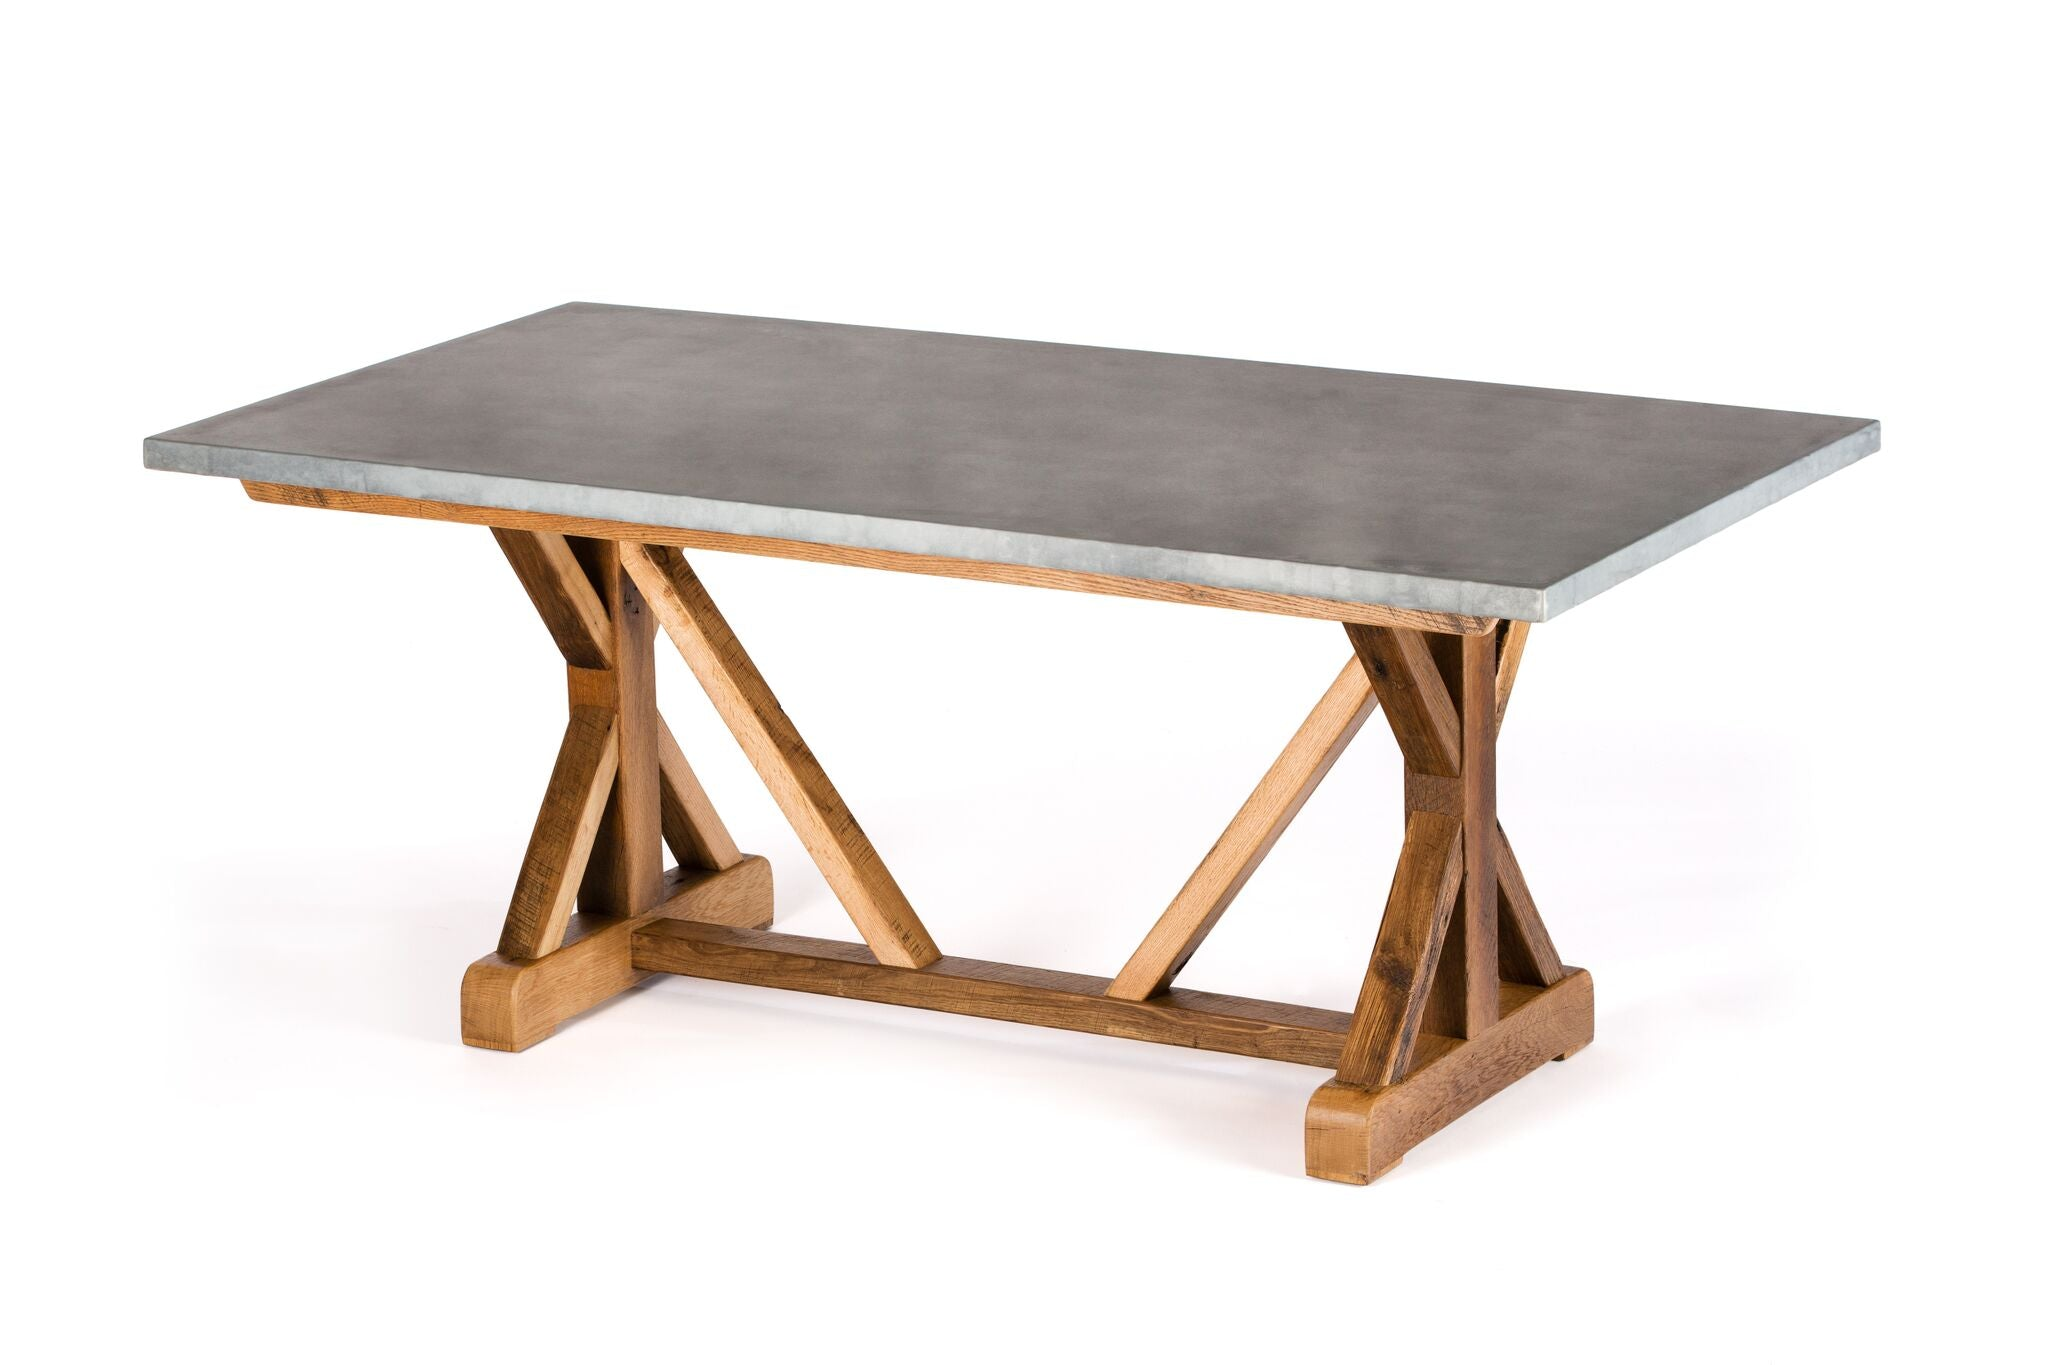 "Zinc Rectangular Table | French Trestle Table | CLASSIC | Americana on Reclaimed Oak | CUSTOM SIZE 60""L 37""W 30""H 